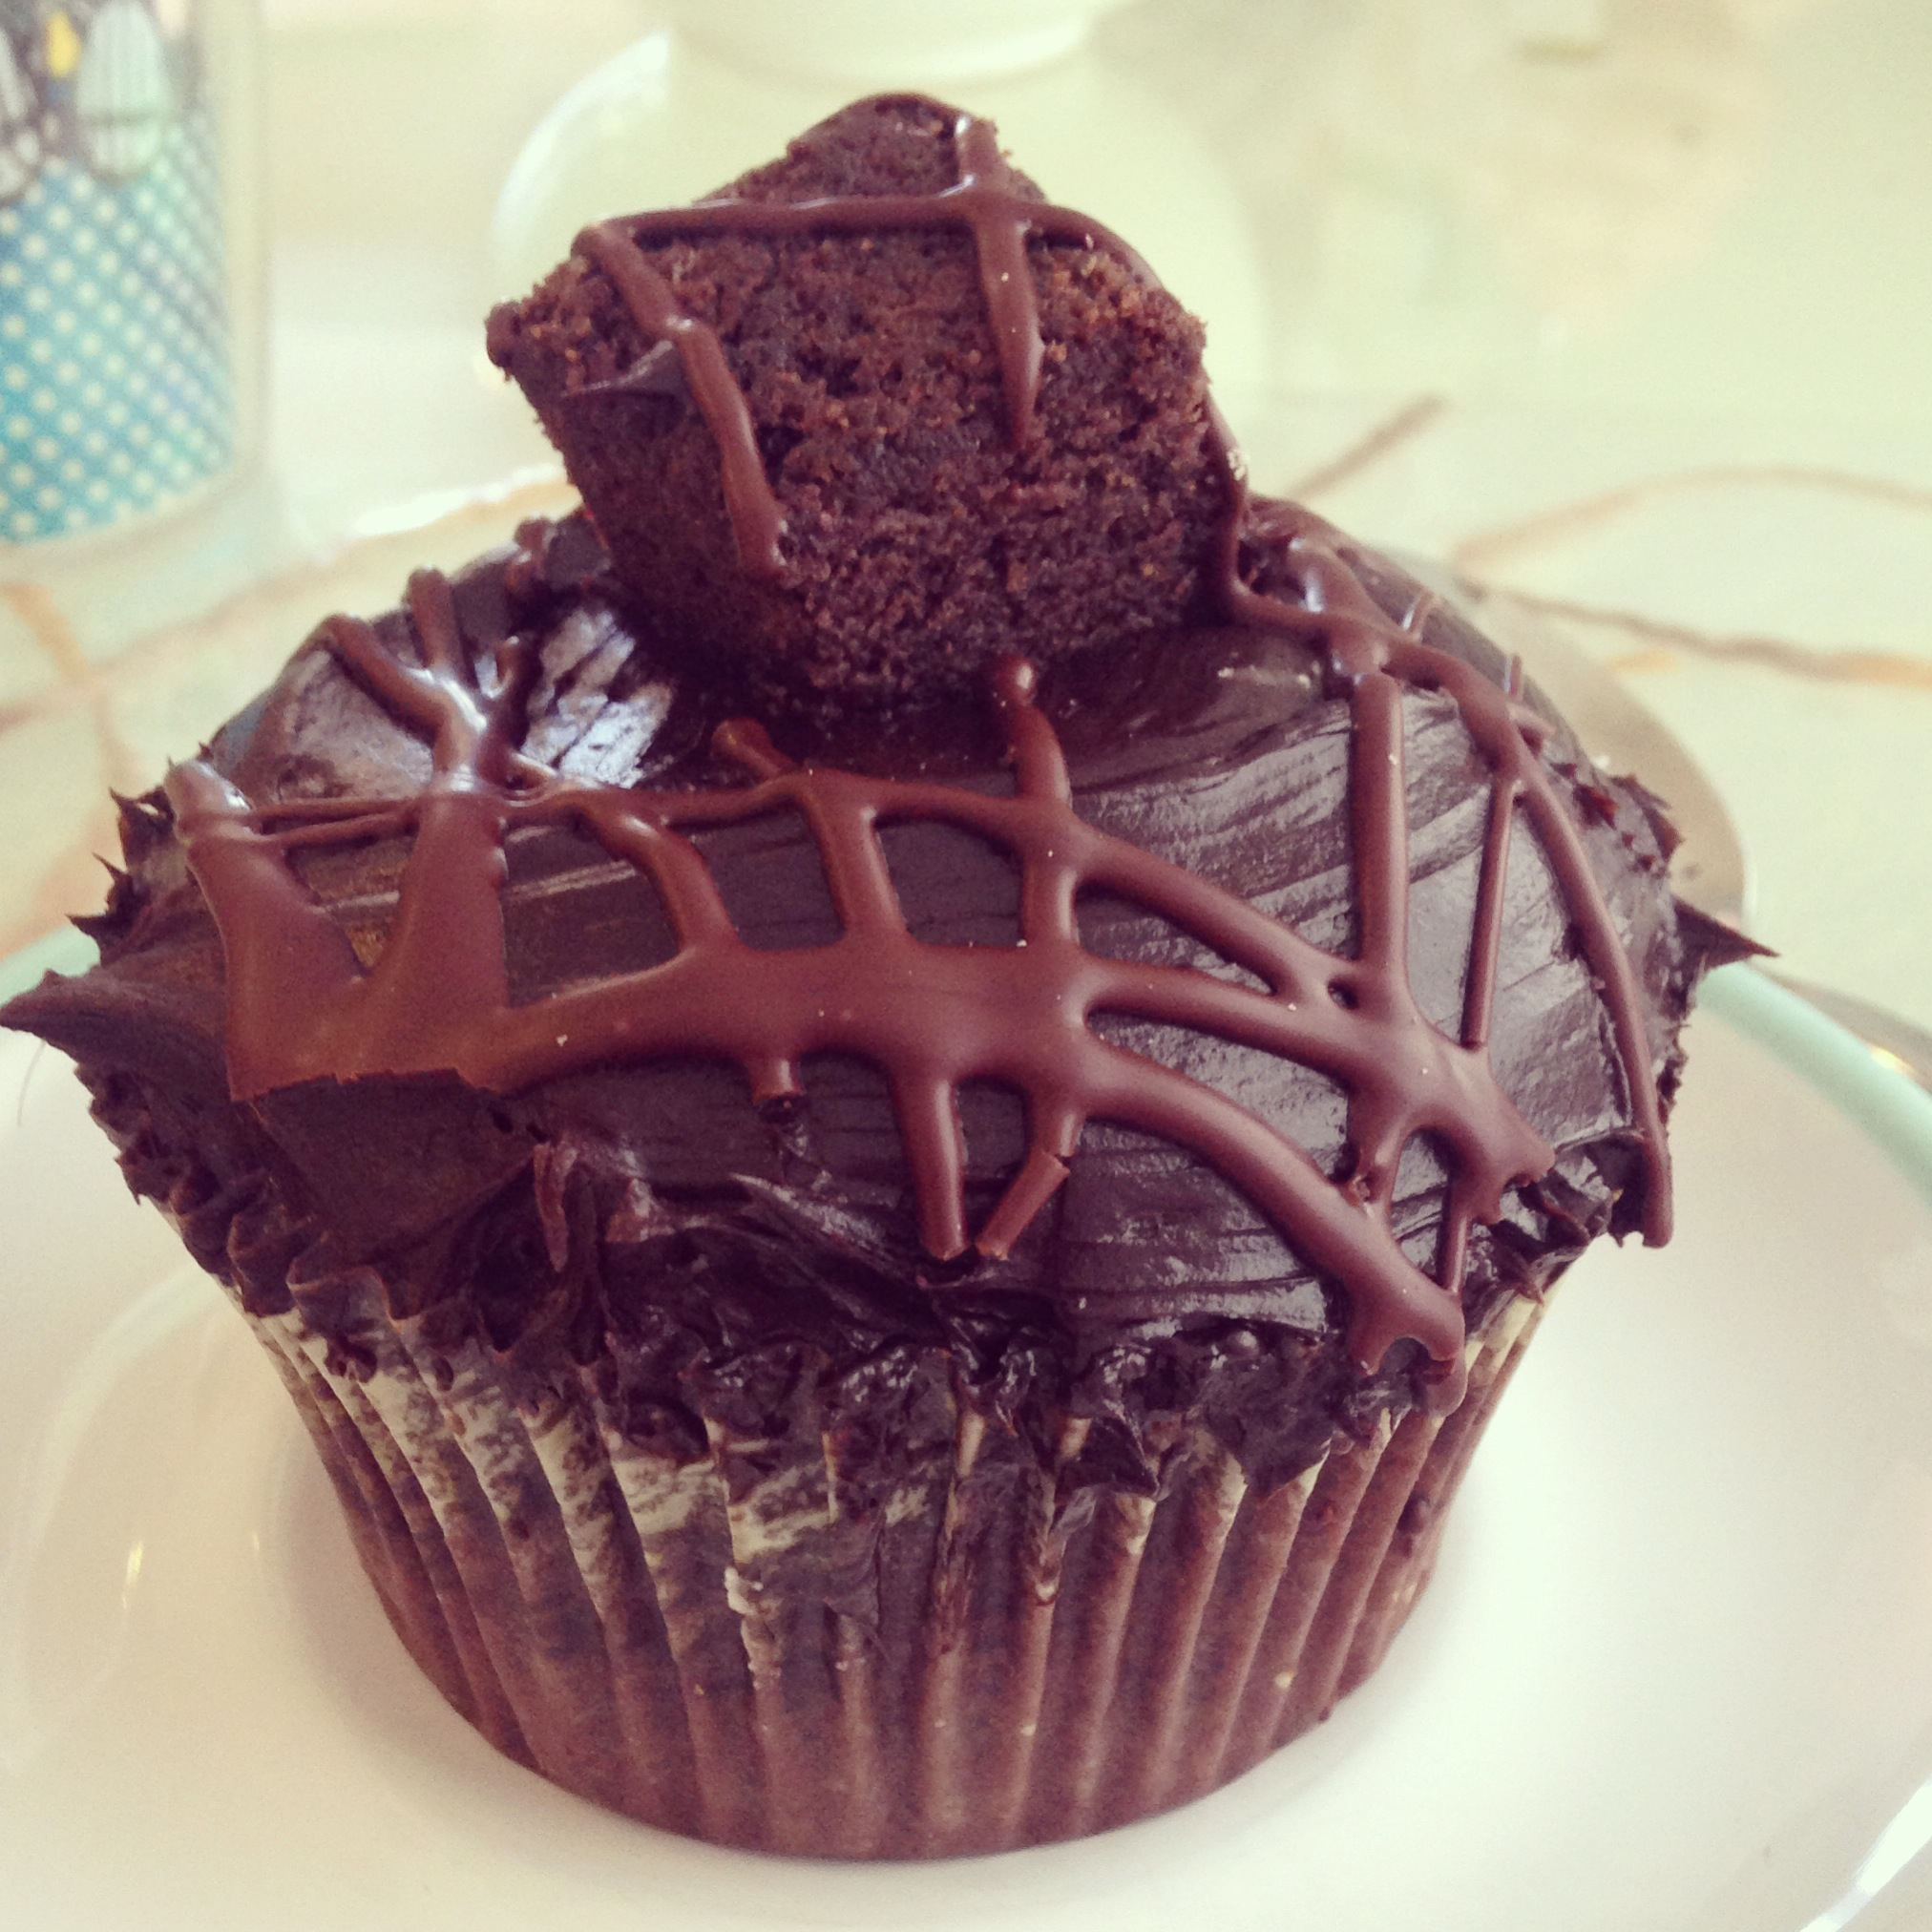 ... Fudge Brownie Cupcake filled and frosted with thick chocolate fudge